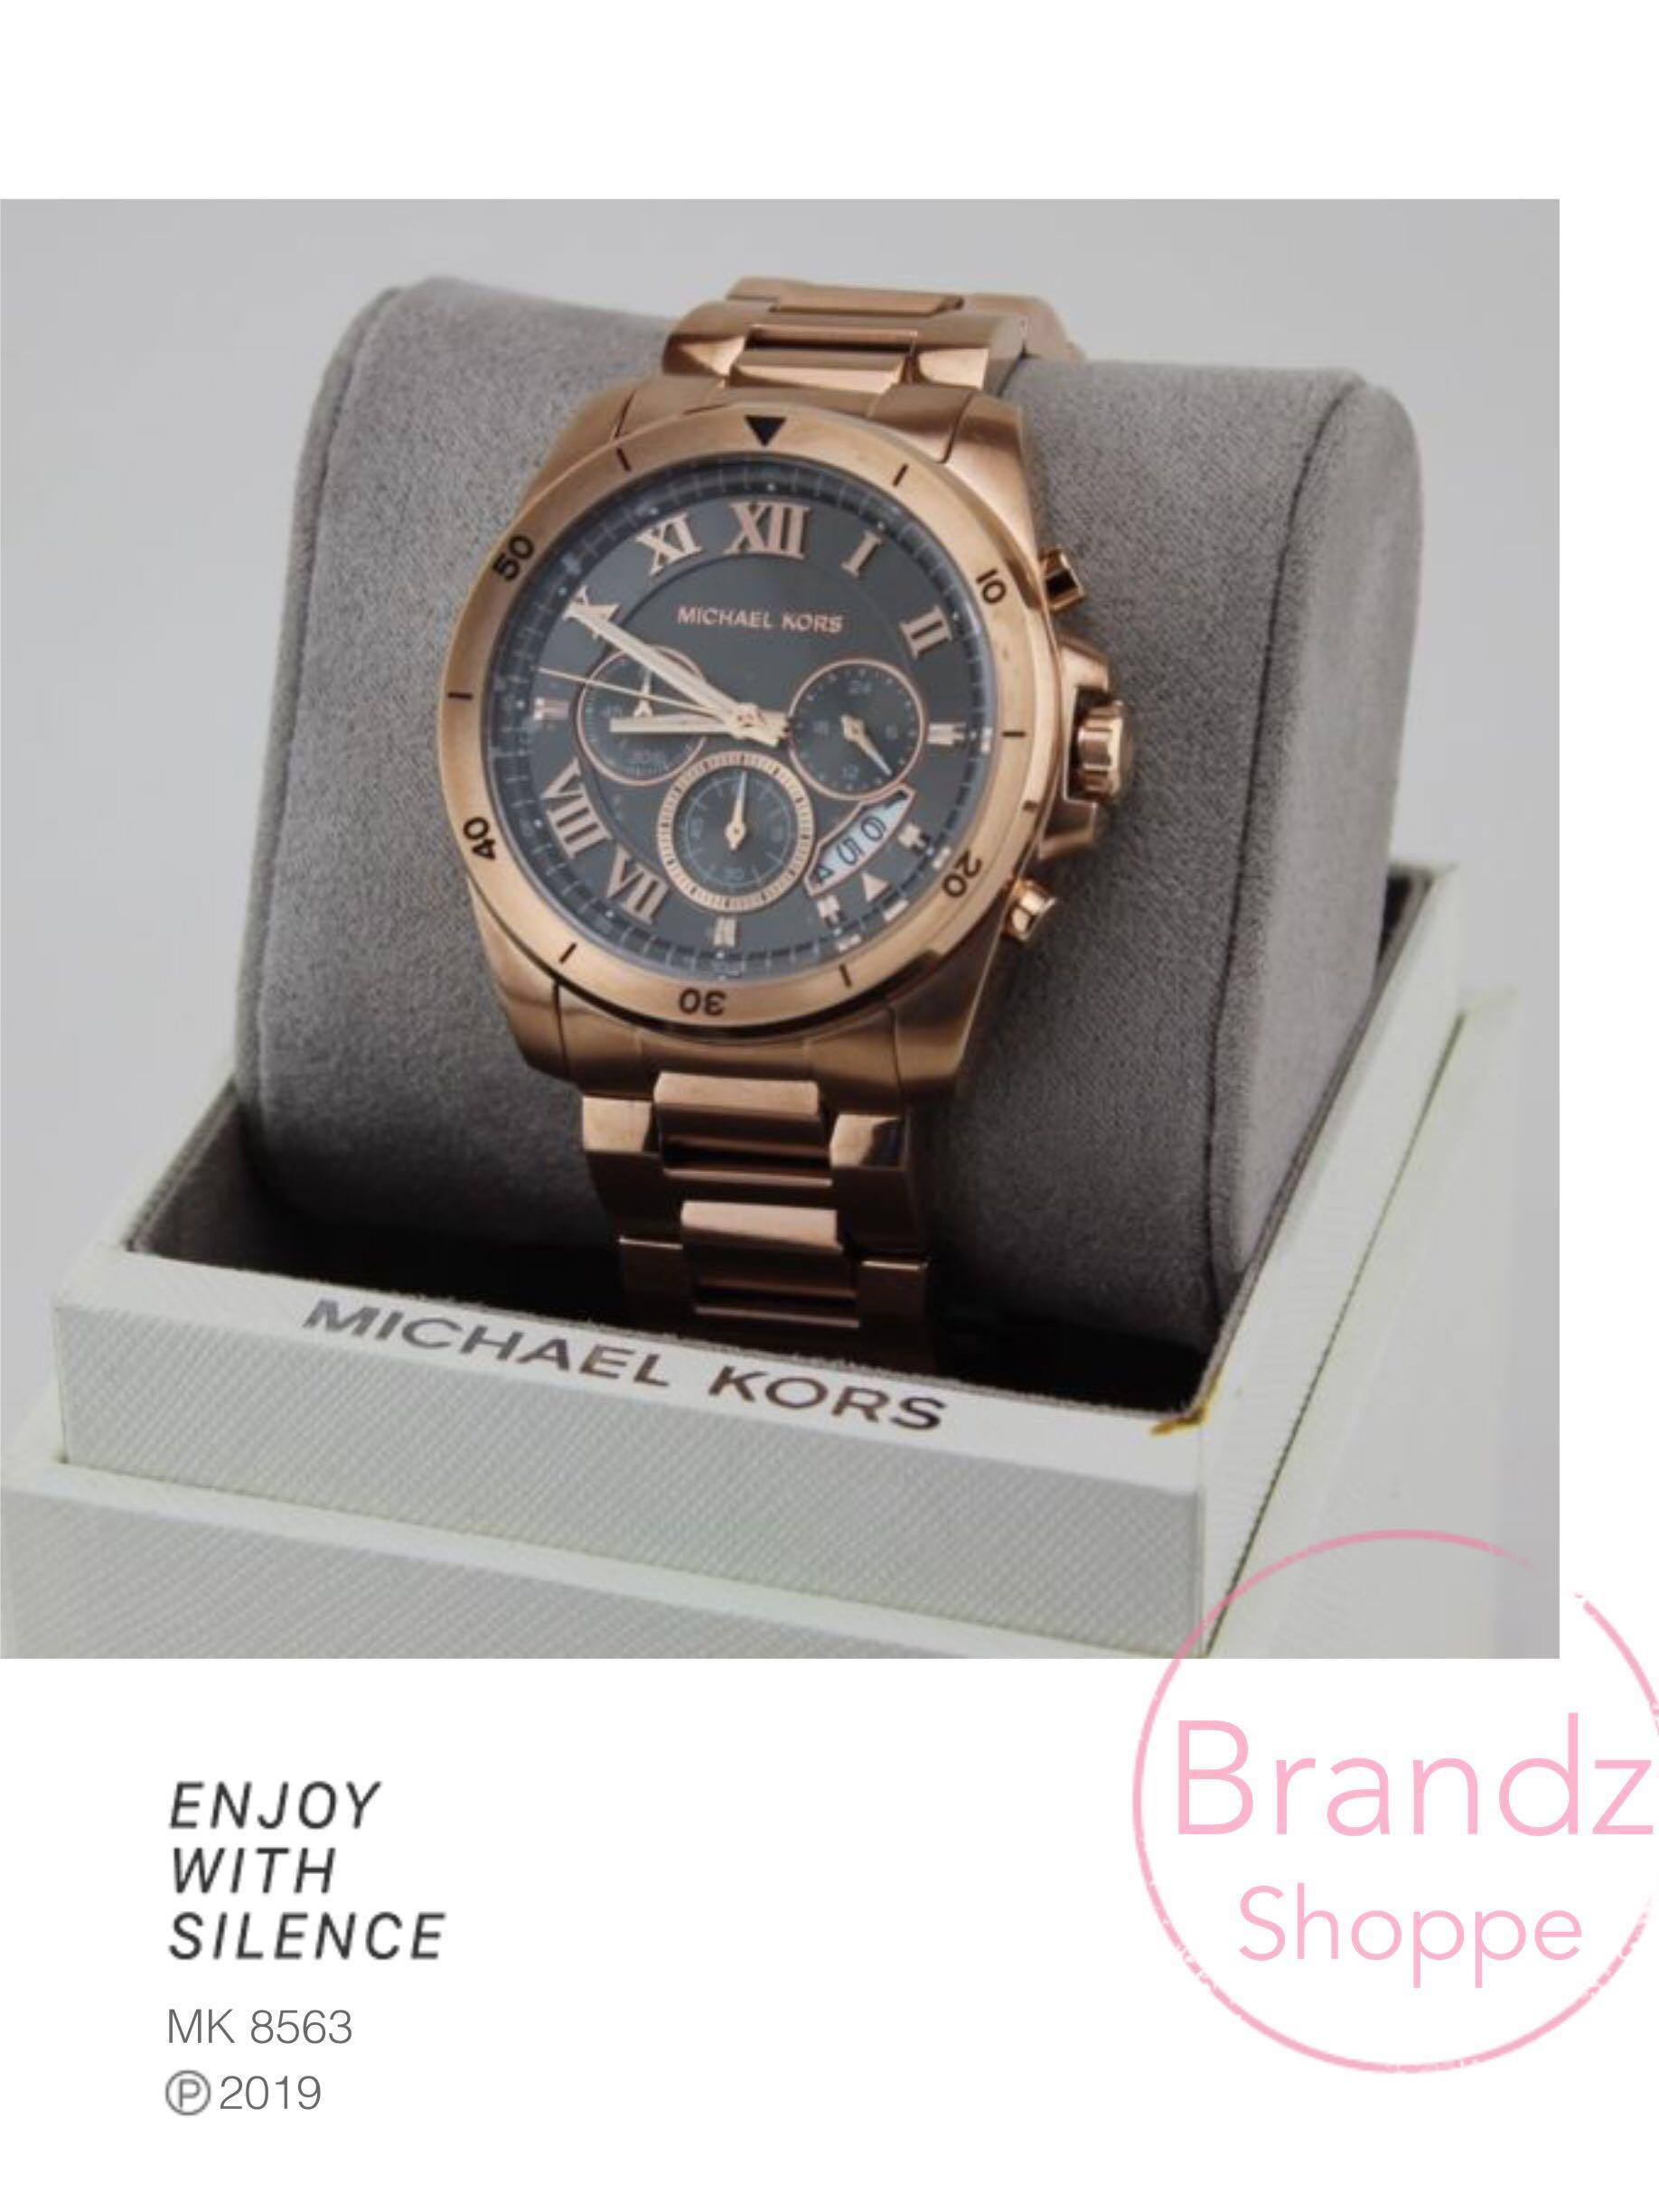 💥CLEARANCE SALE! 💯% MICHAEL KORS Brecken Grey Dial Men's Rose Gold Chronograph Watch (MK8563) Pre-Order NOW!!!